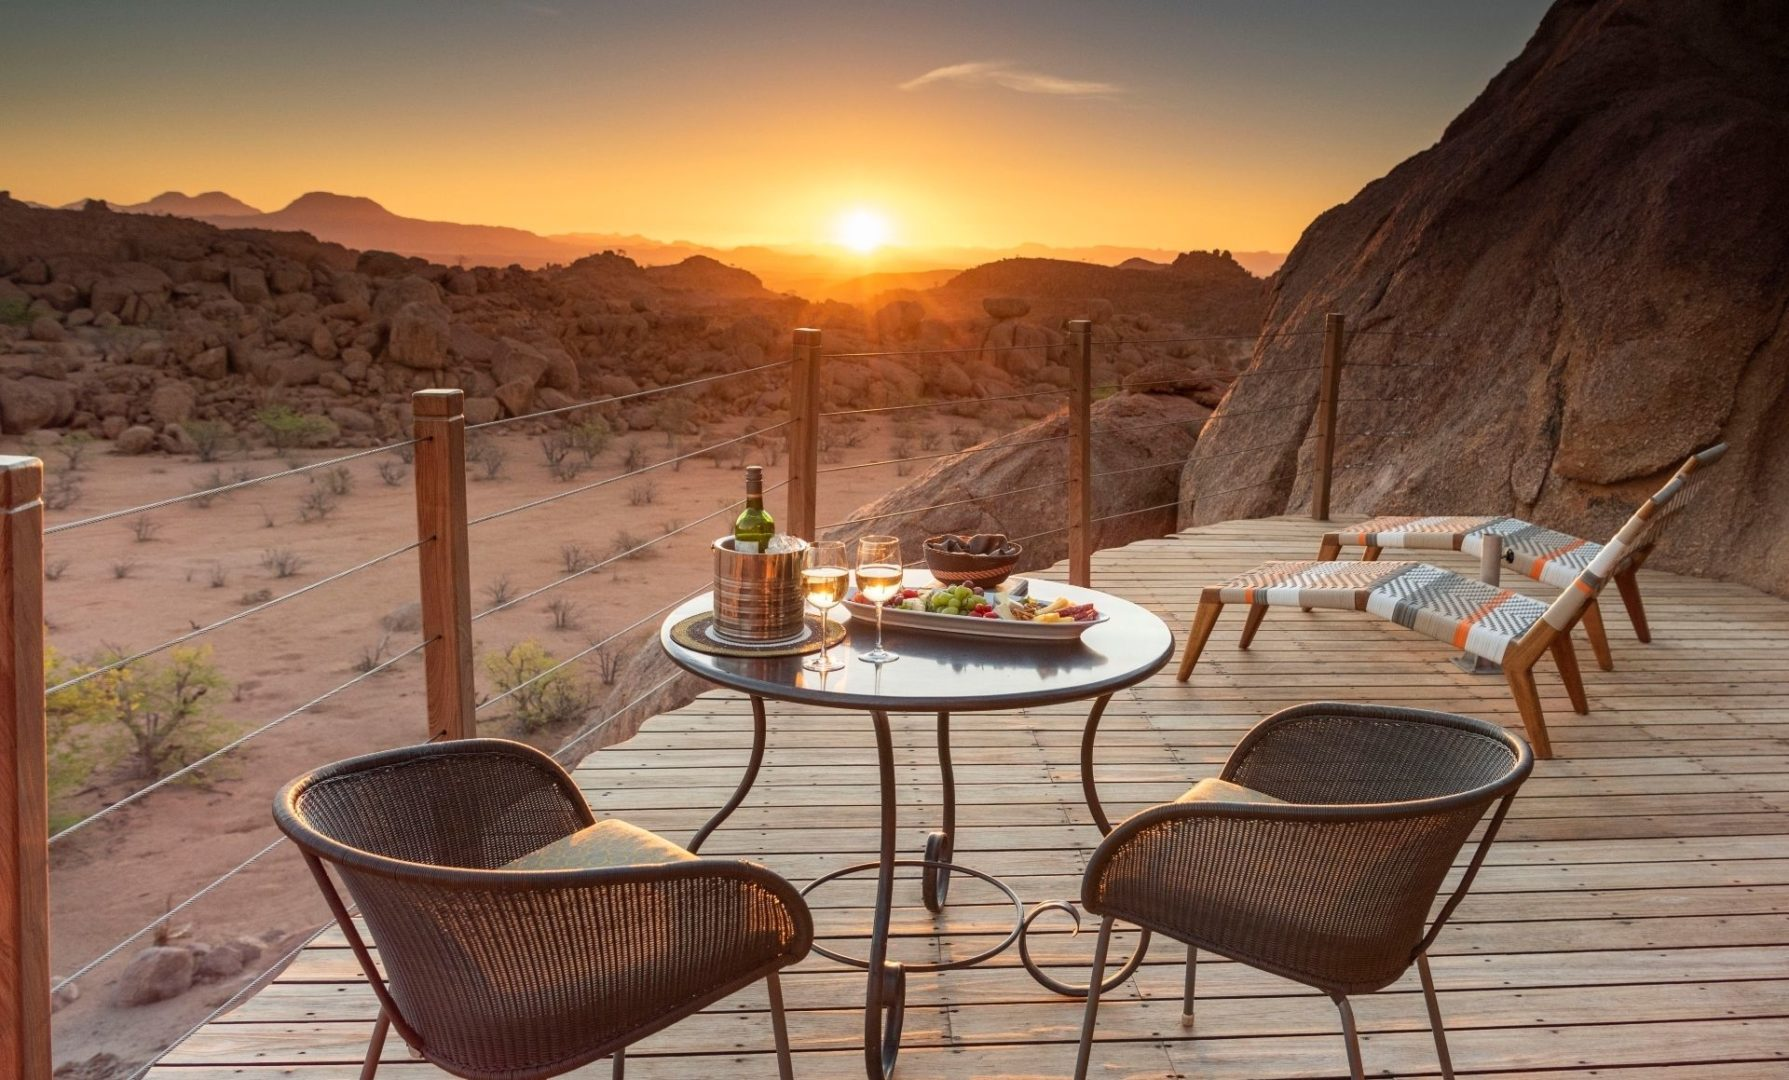 Mowani Mountain Suite – Deck with Sunset